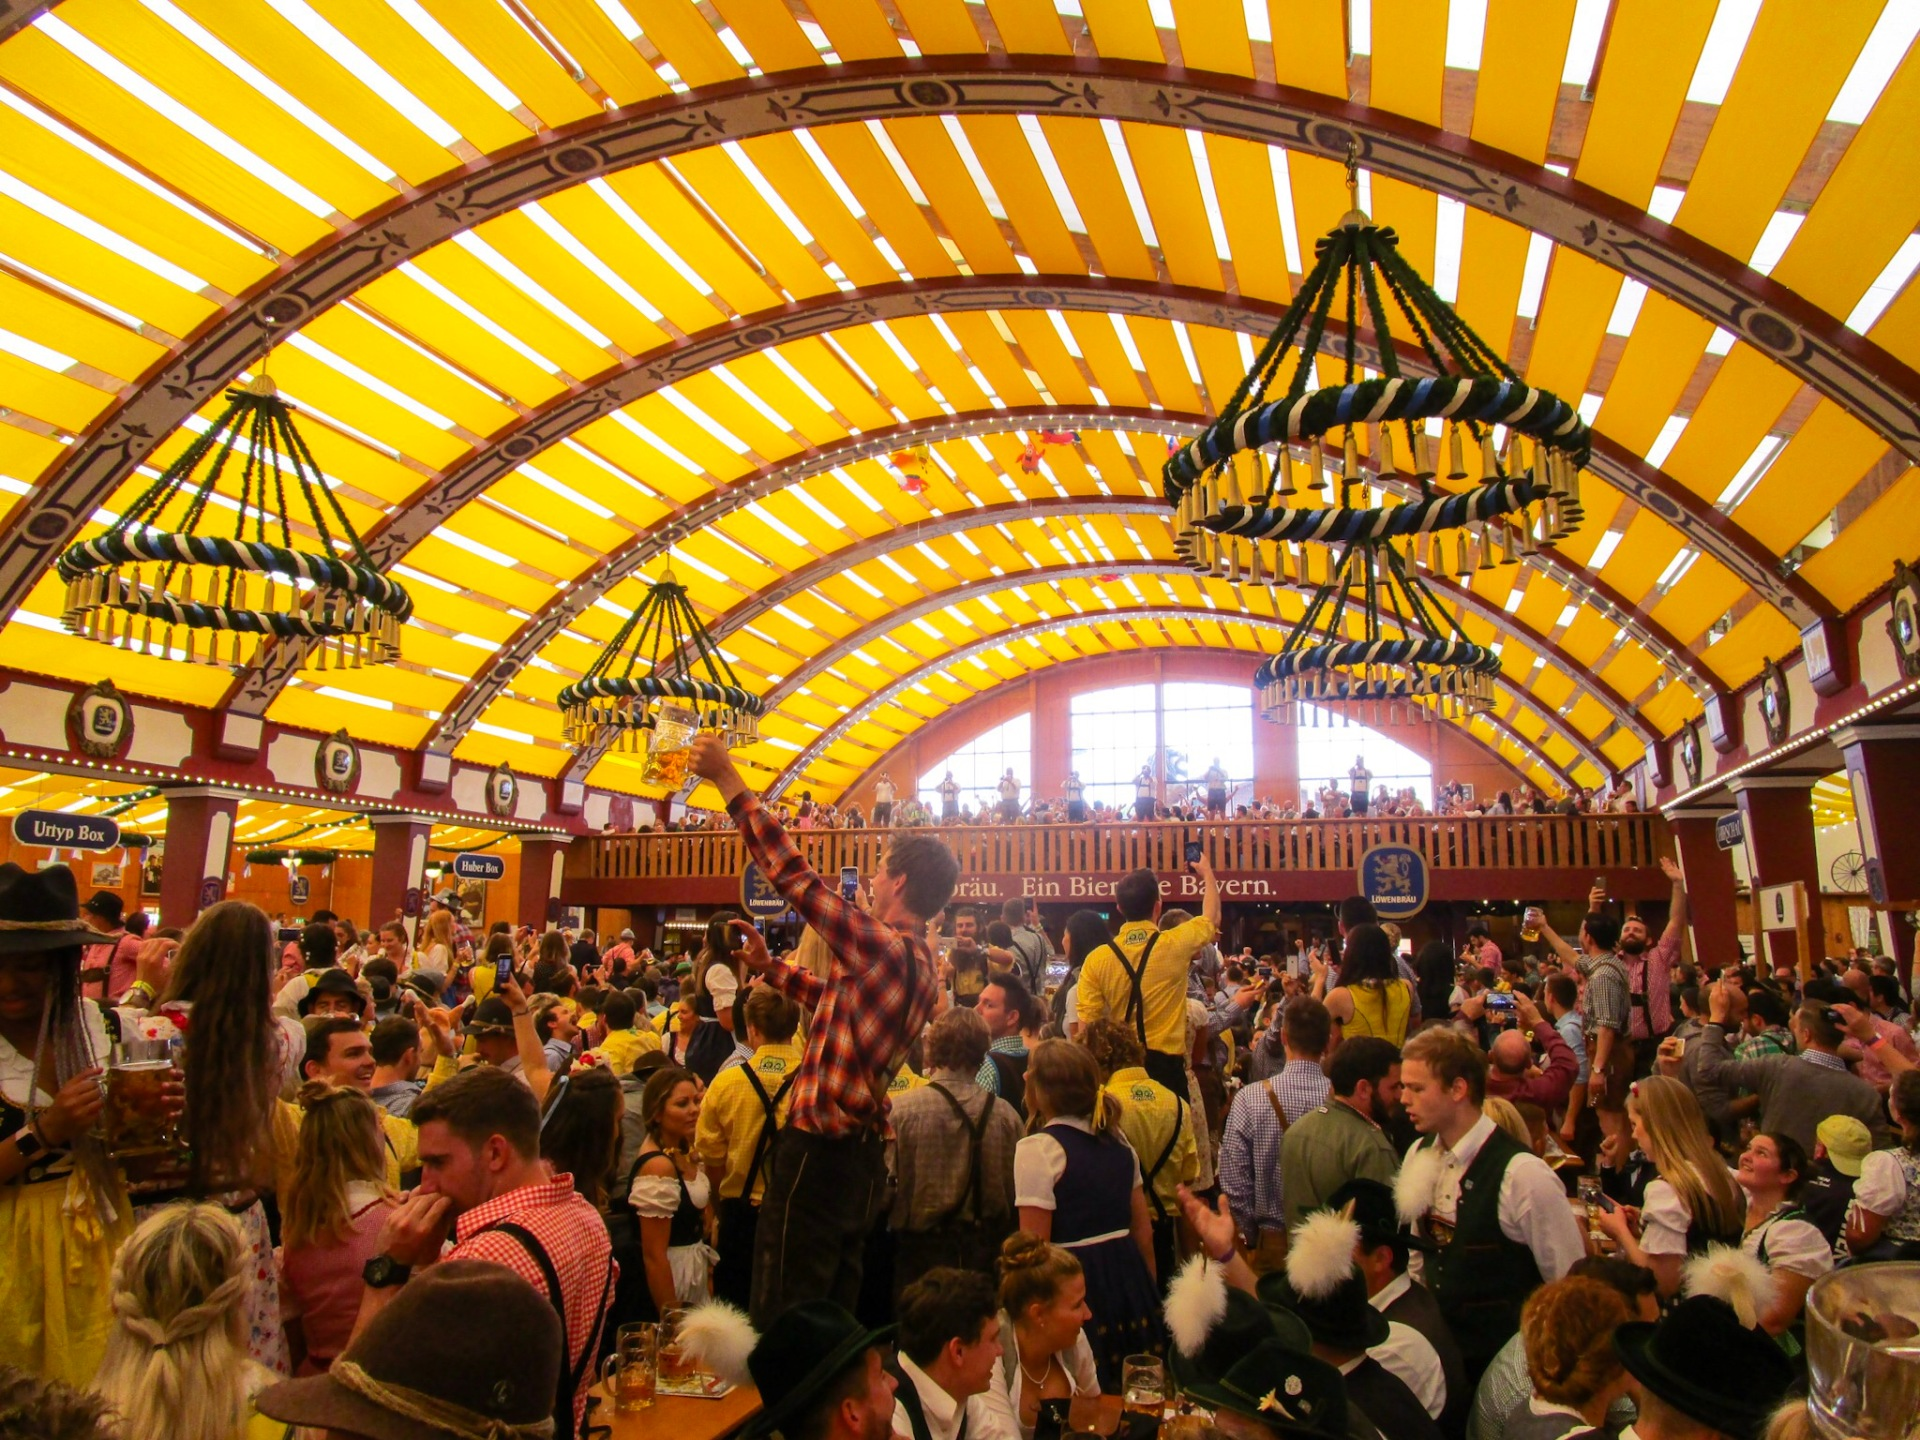 Partying in the Löwenbräu tent in Oktoberfest, Munich